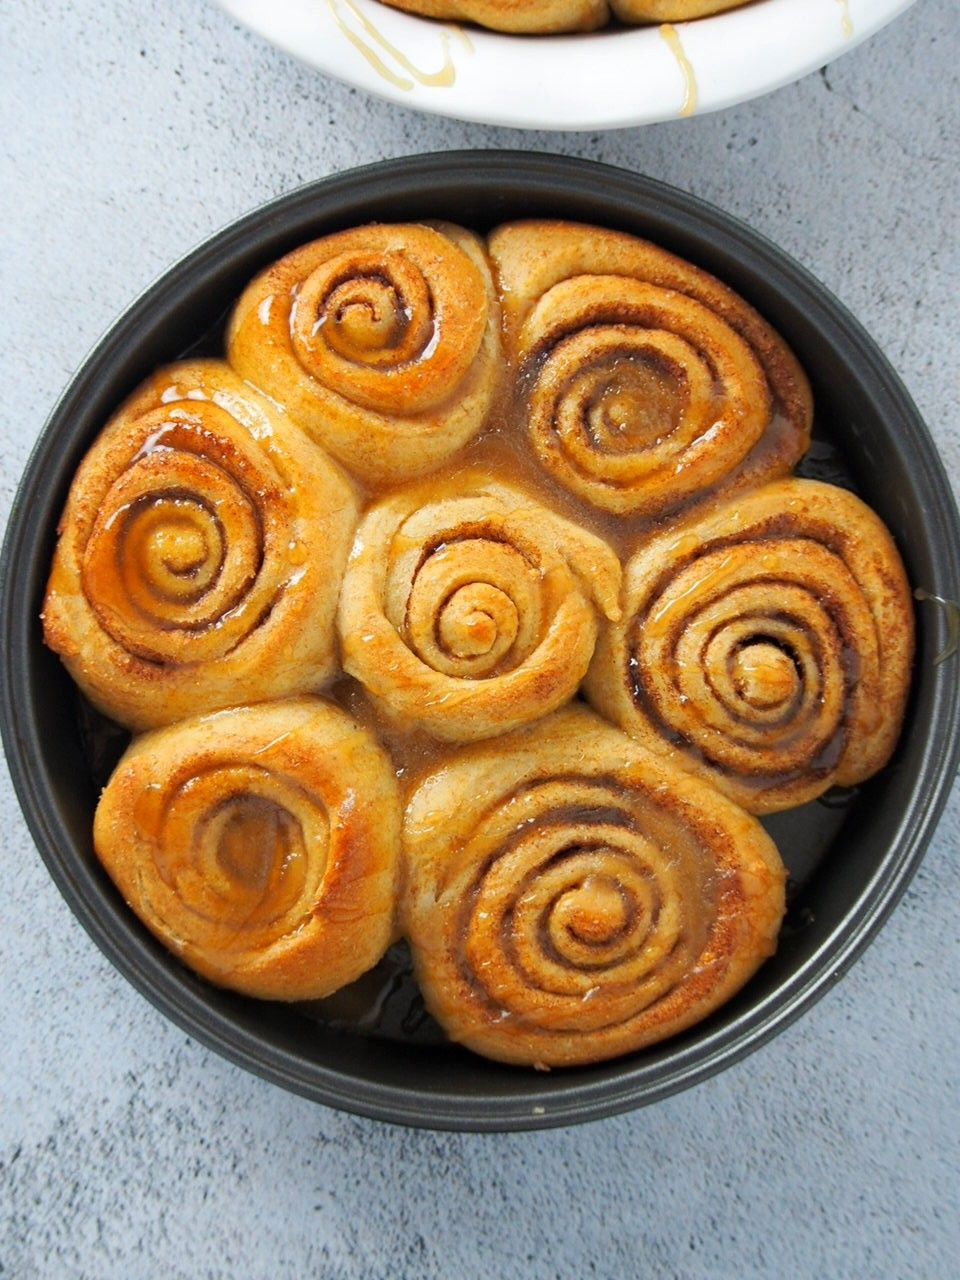 Whole Wheat Cinnamon Rolls With Easy Caramel Glaze Recipe Cinnamon Rolls Sweet Bread Rolls Recipe Sweet Roll Recipe